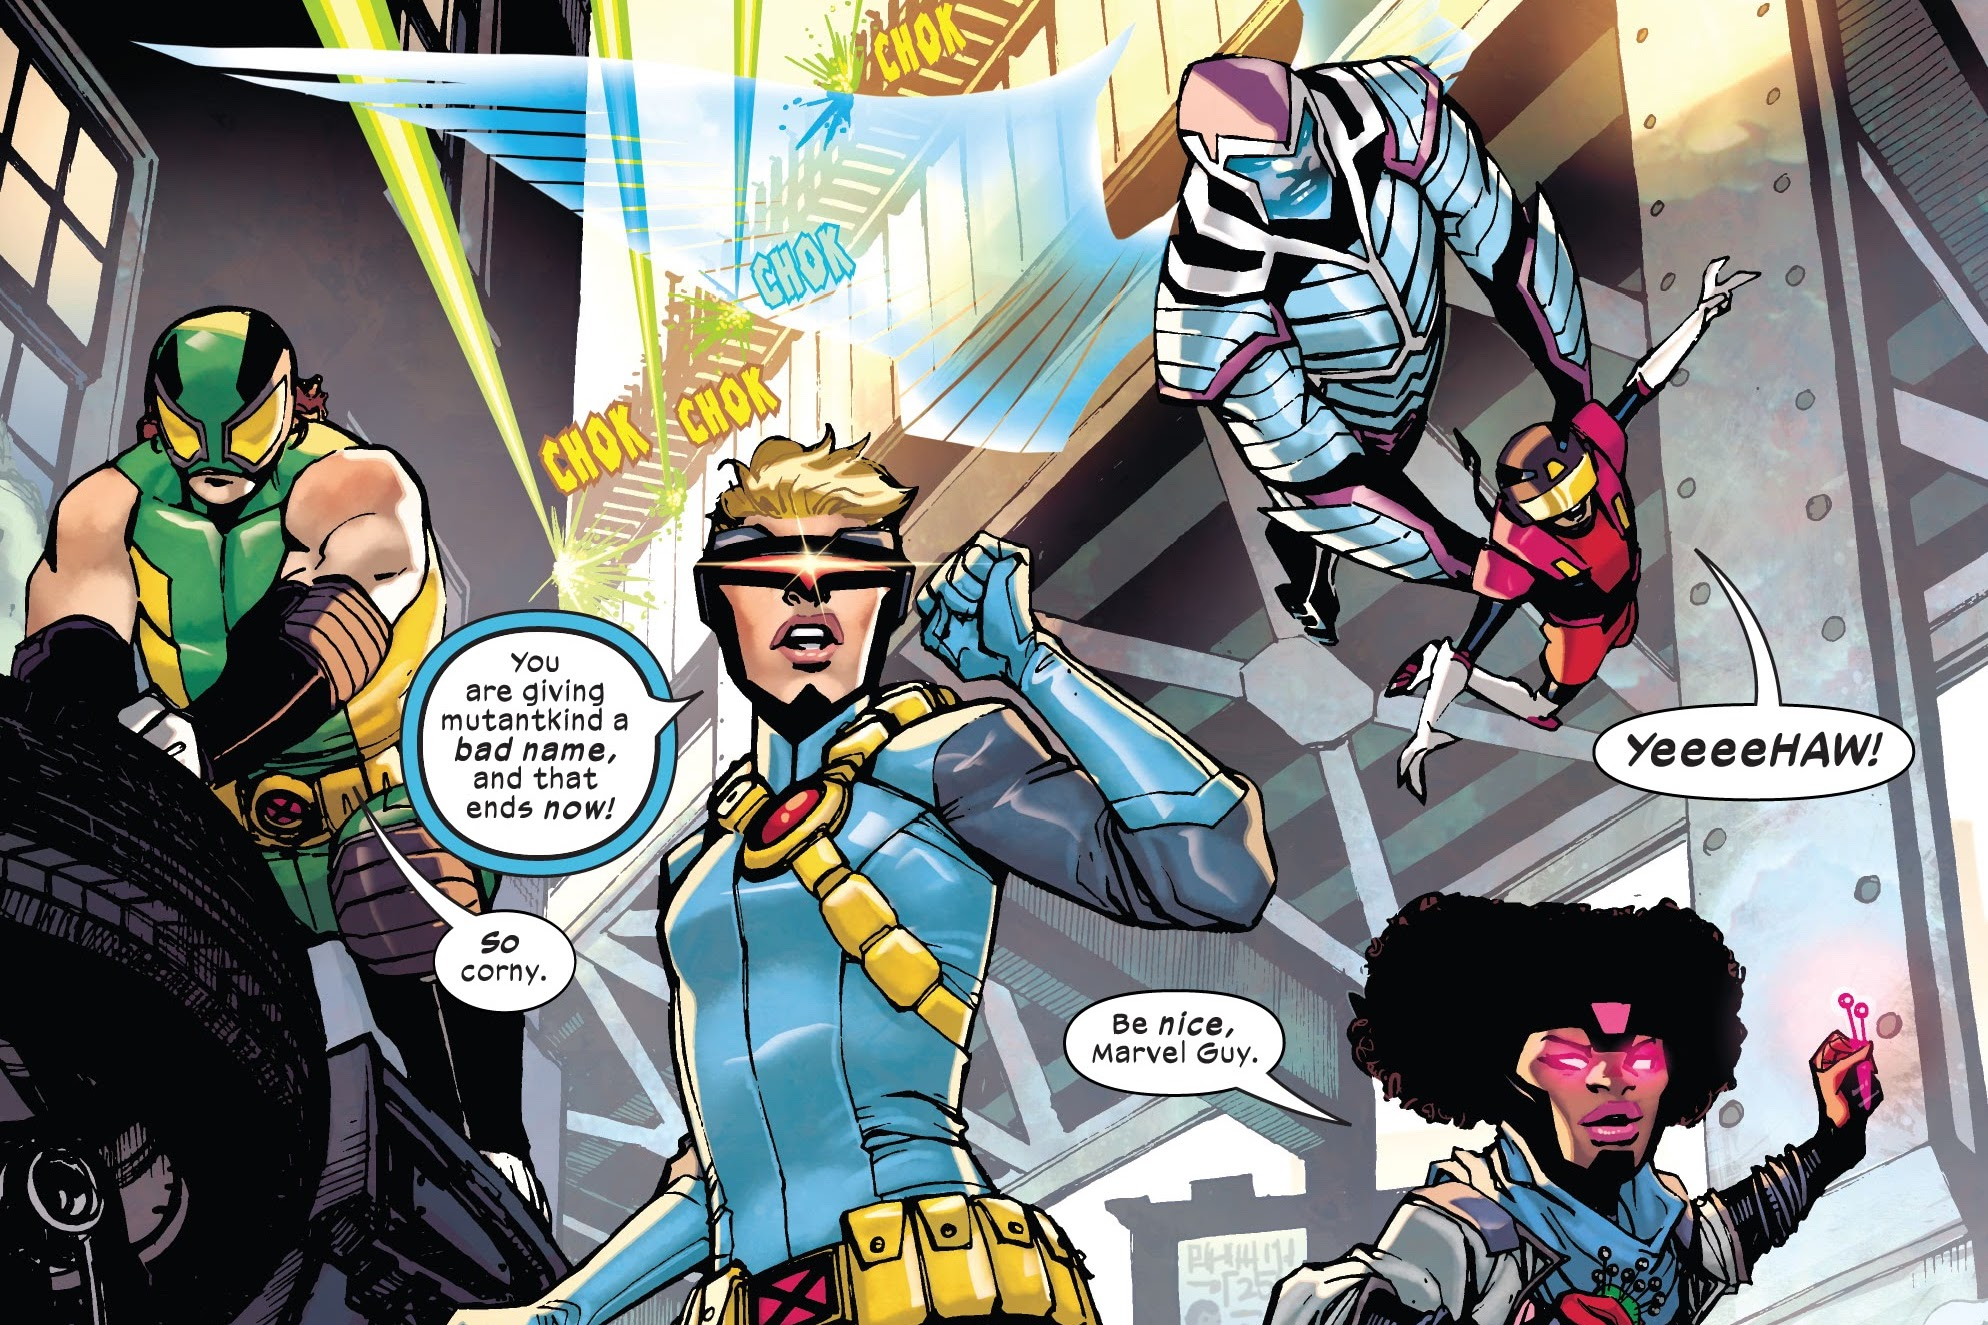 Marvel Guy, Cyclops-Lass, Cherub, Daycrawler, and Gimmick in The Children of the Atom #1, Marvel Comics (2021).